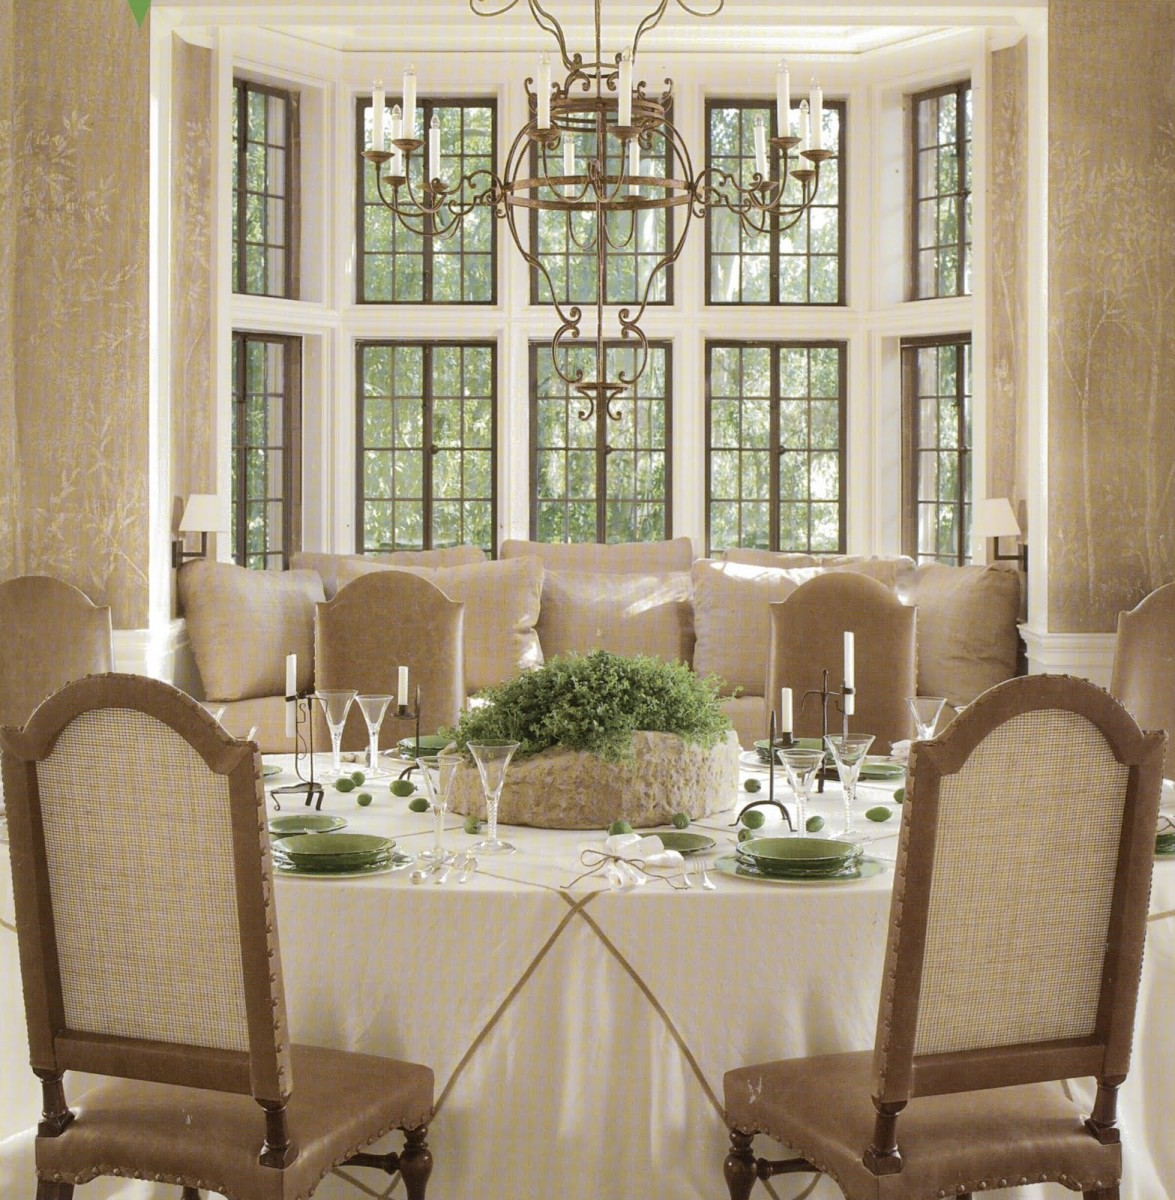 17 Best Images About Dining Room Ideas On Pinterest Dining Room